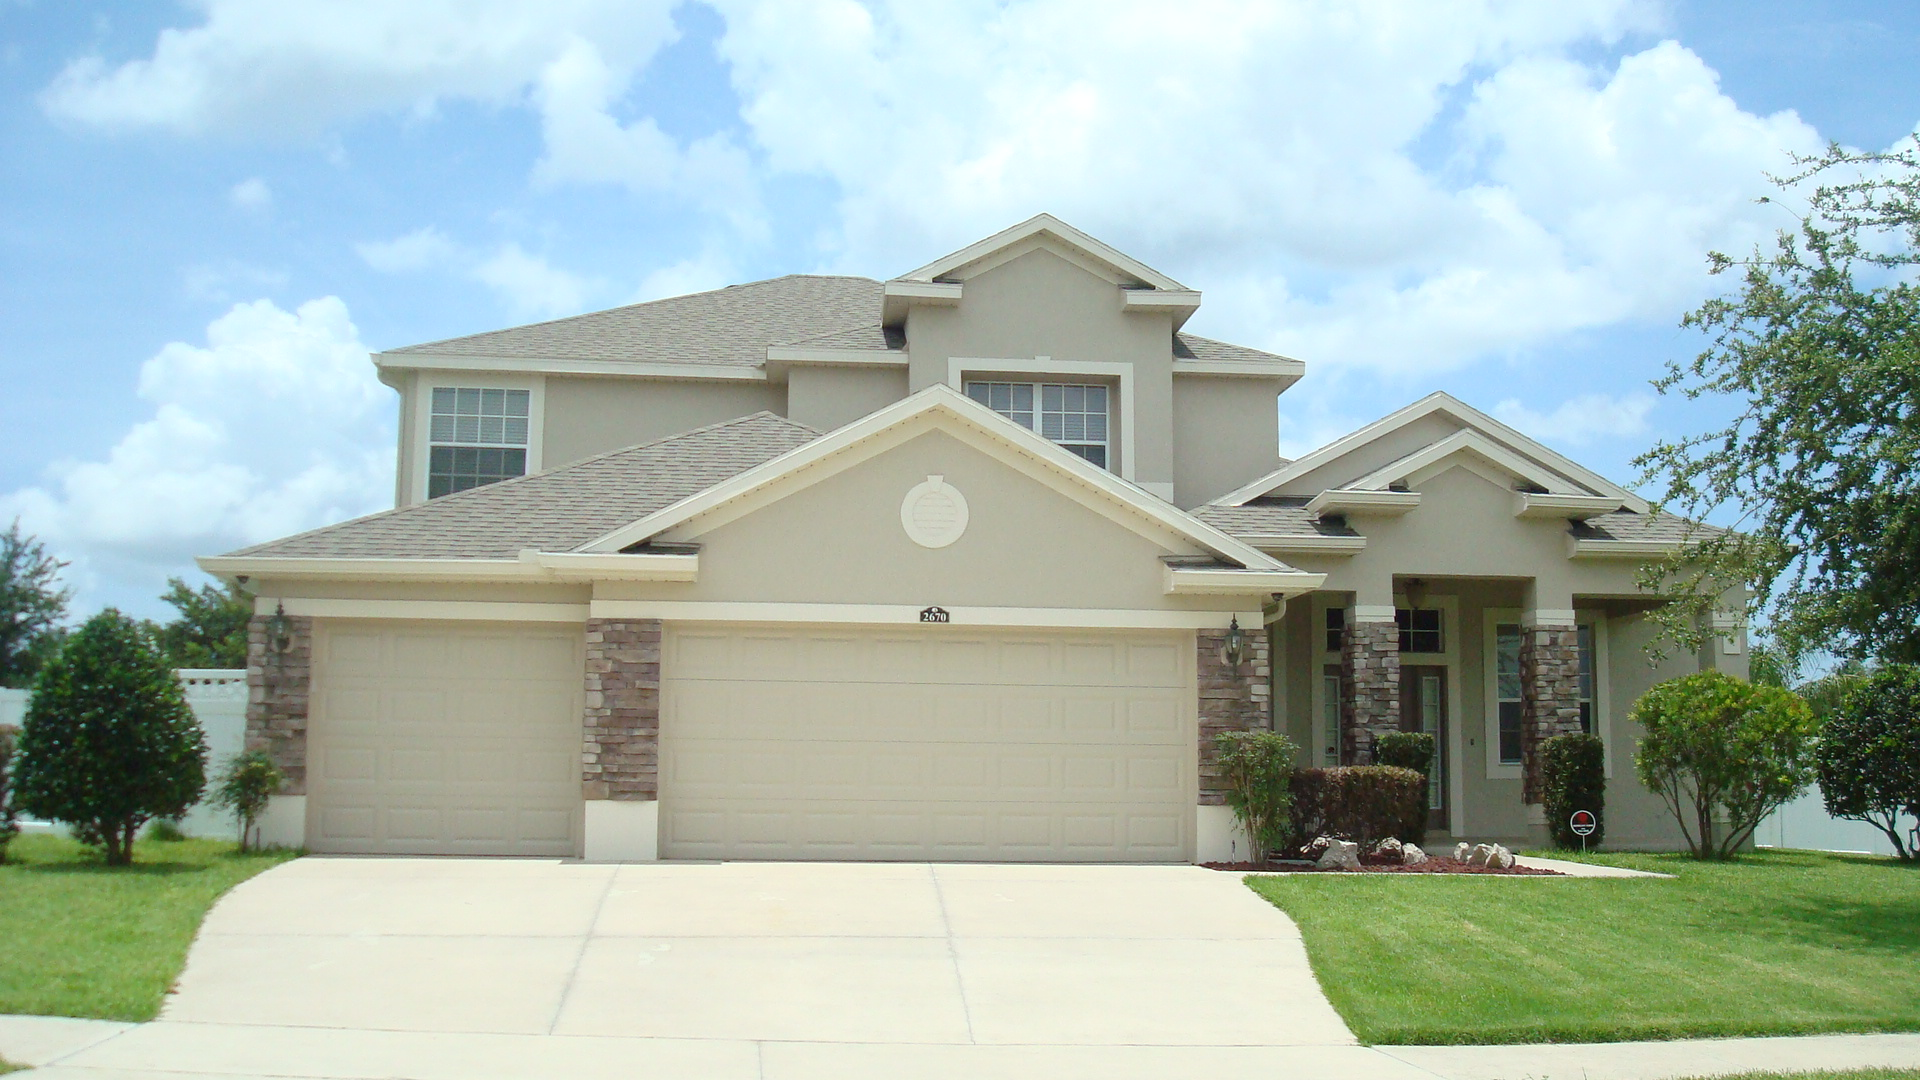 four bedroom homes for sale in clermont fl october 2016